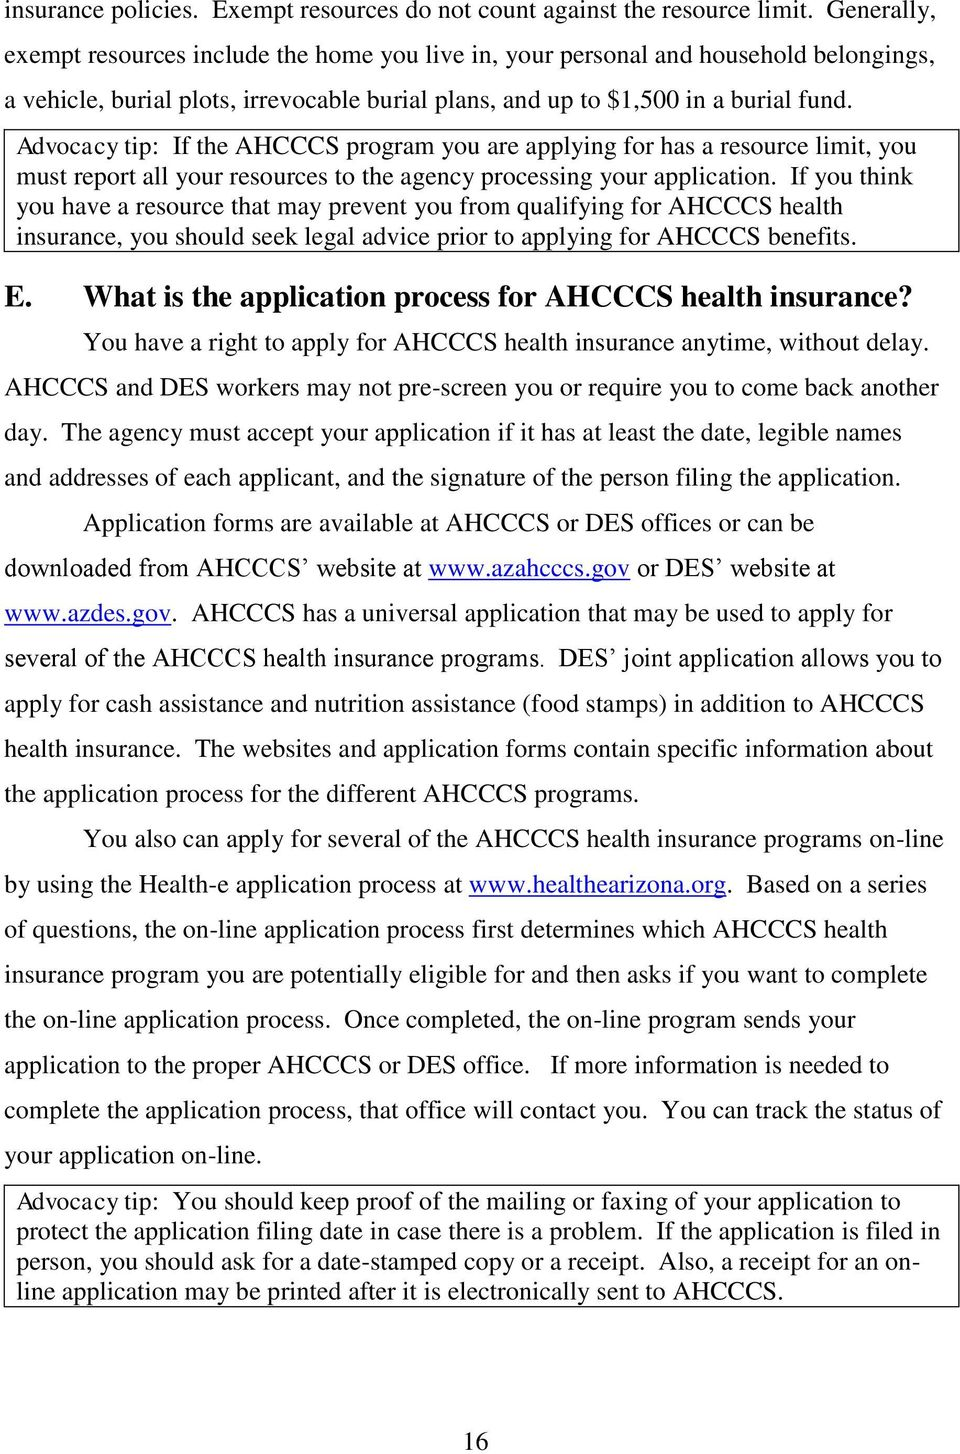 Advocacy tip: If the AHCCCS program you are applying for has a resource limit, you must report all your resources to the agency processing your application.